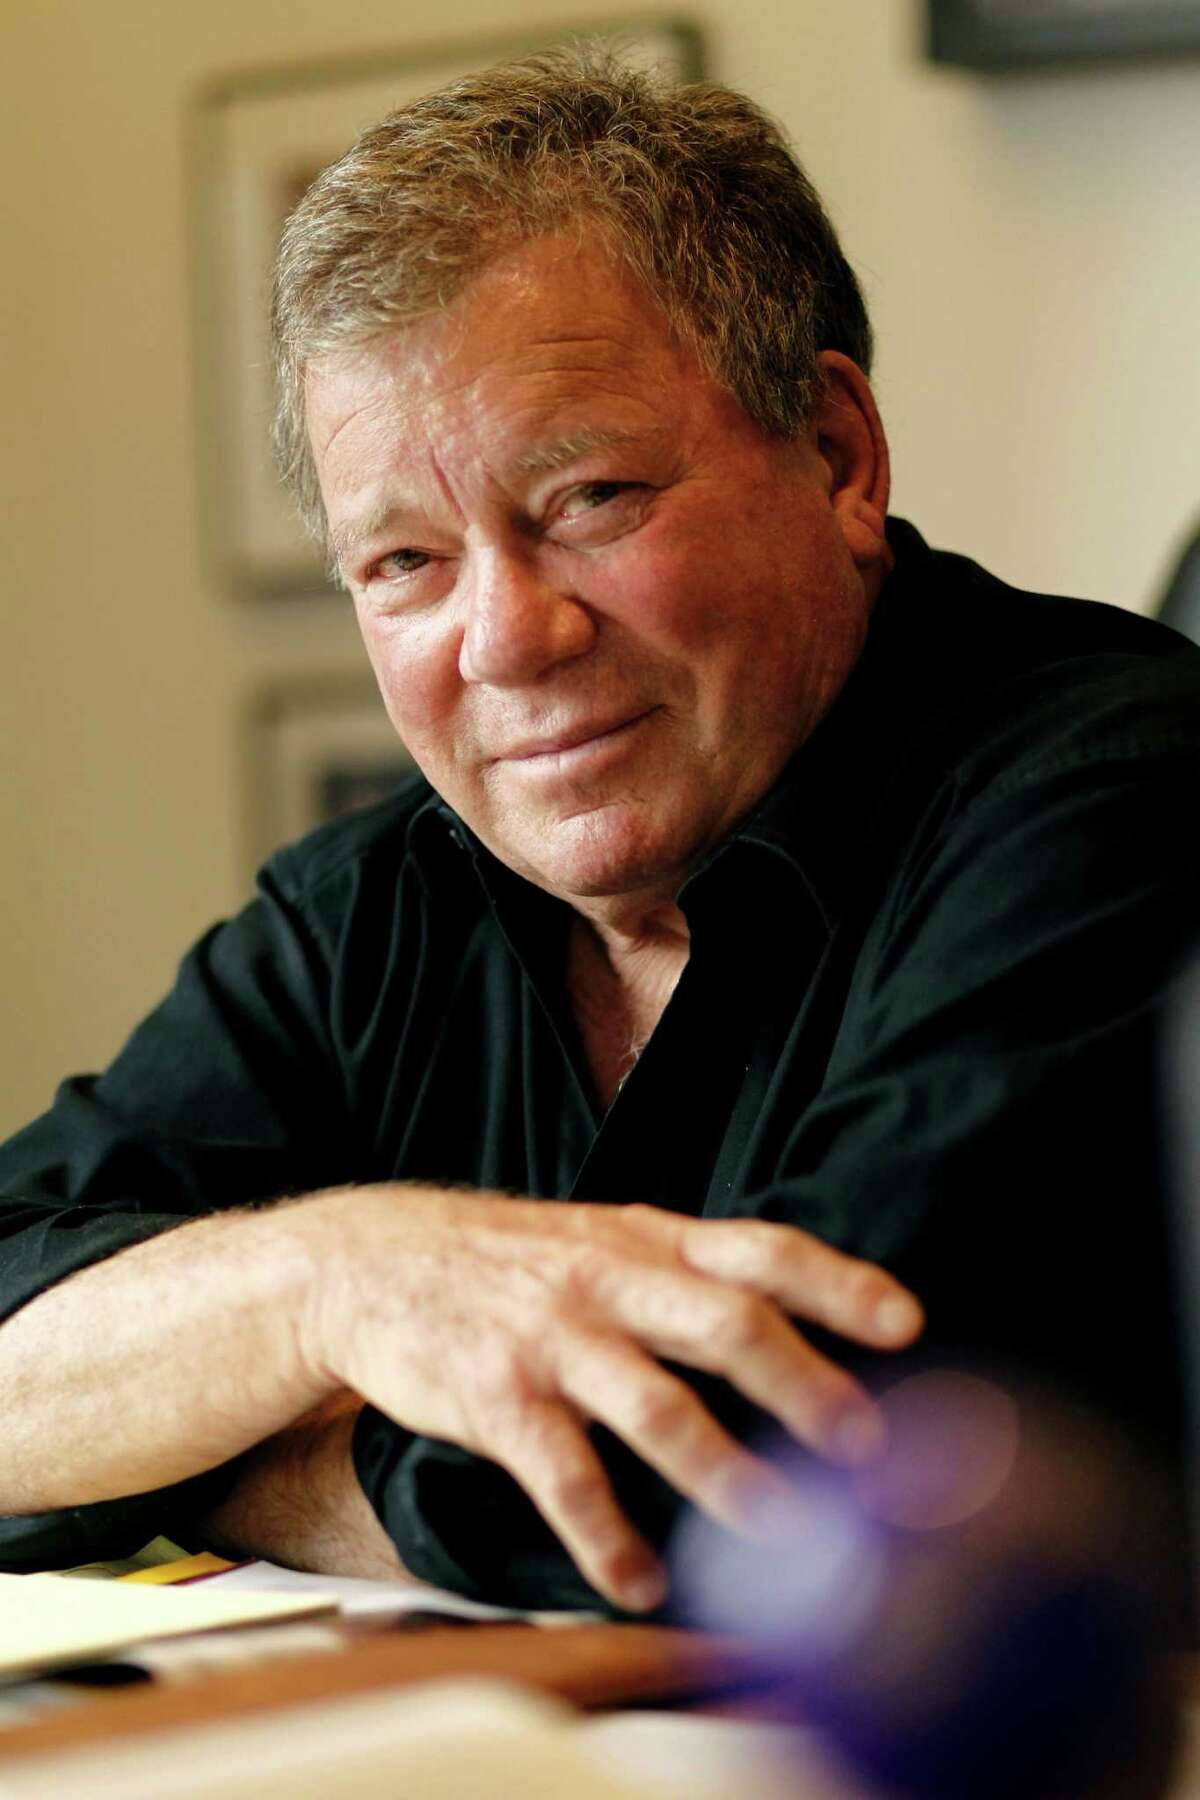 Film and TV legend William Shatner is one of the featured guests at this weekend's Space City Con at NRG Center.